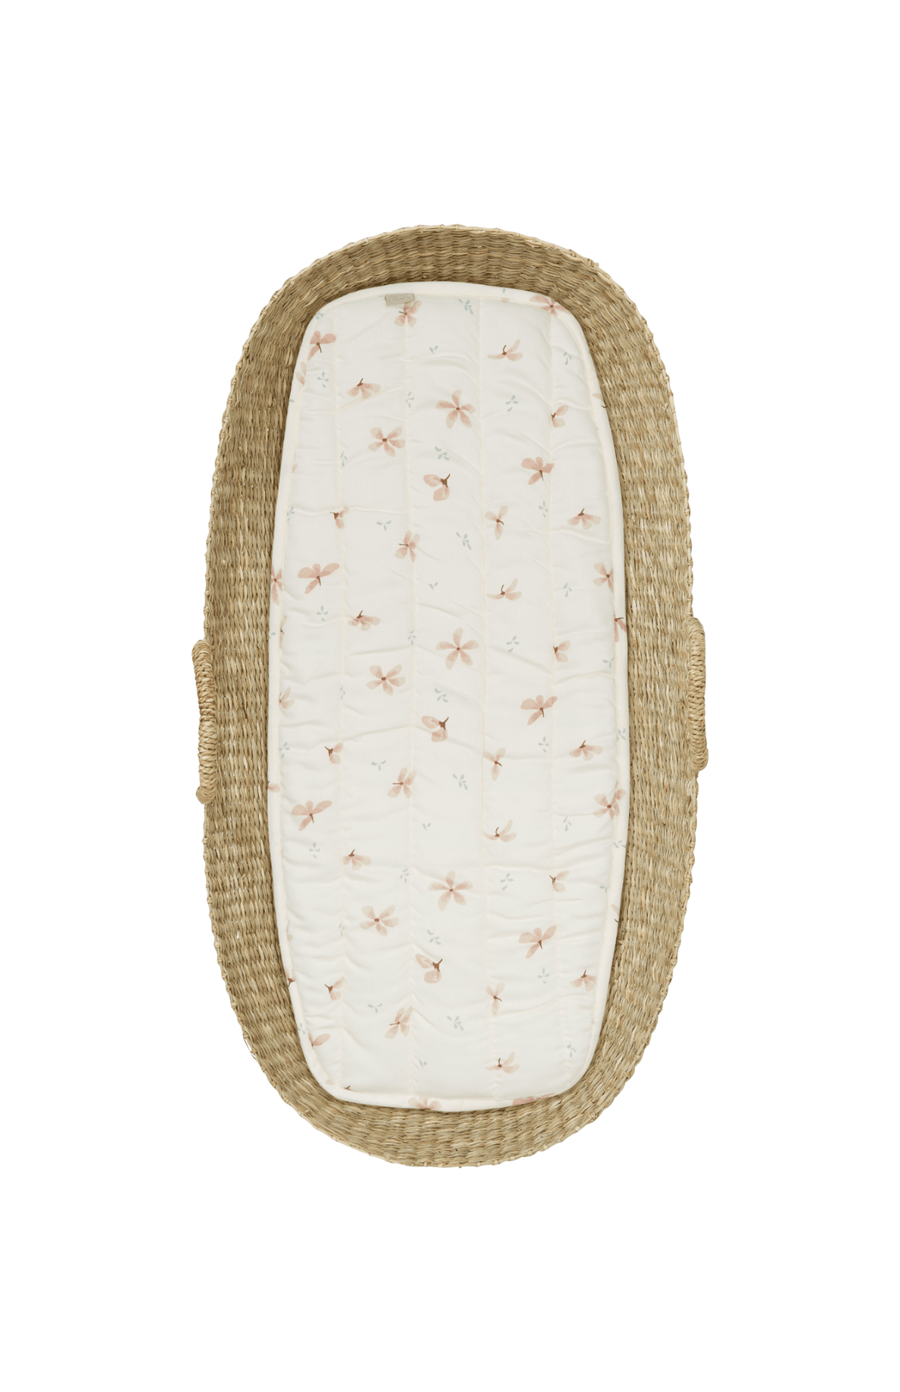 Cam Cam Copenhagen Changing Basket Liner - Windflower Cream